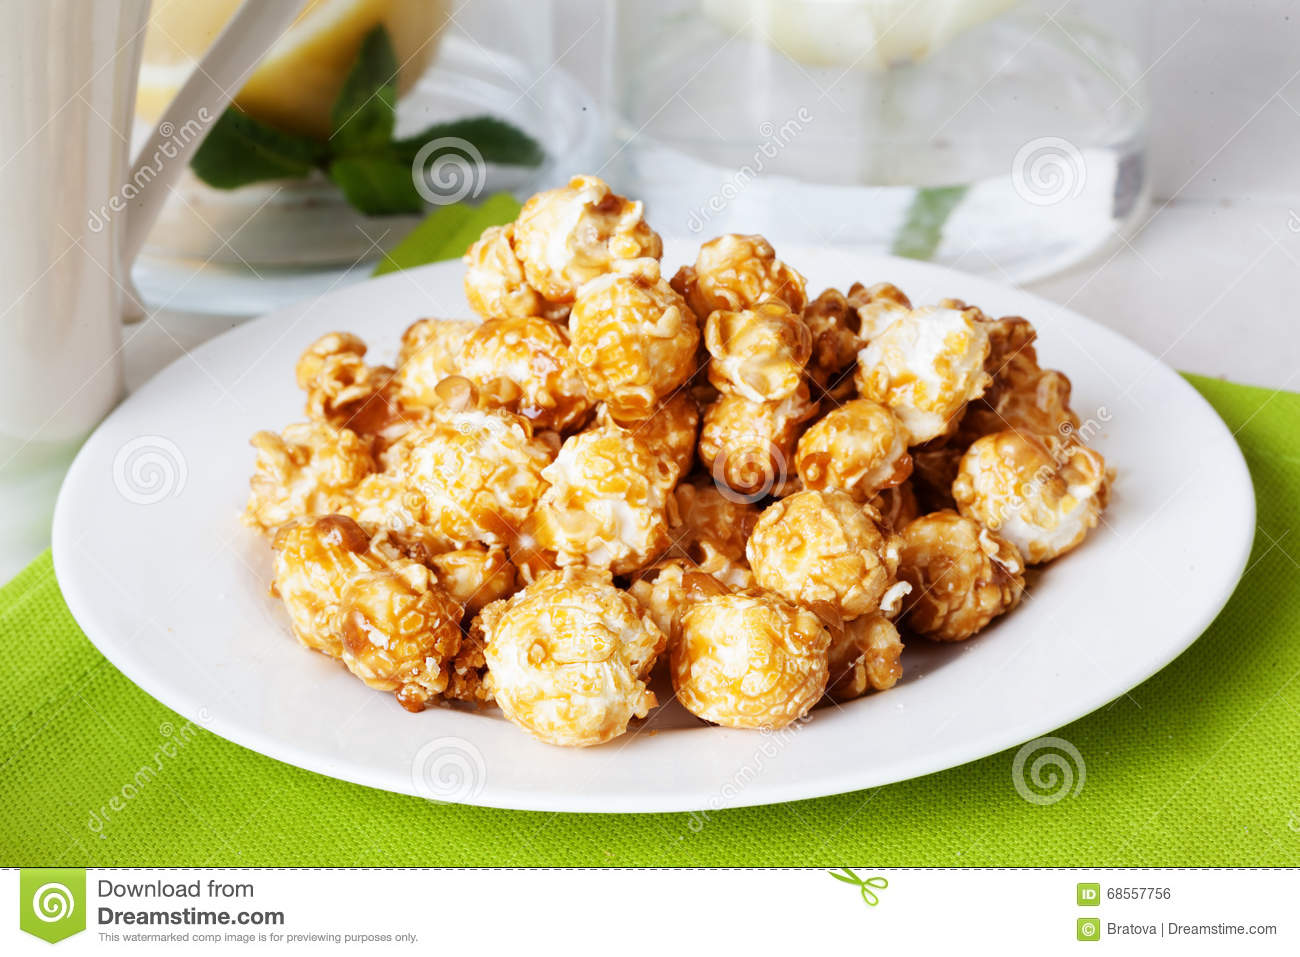 Foodtealife: Sweet Popcorn Food On The Table In Still Life Tea Party